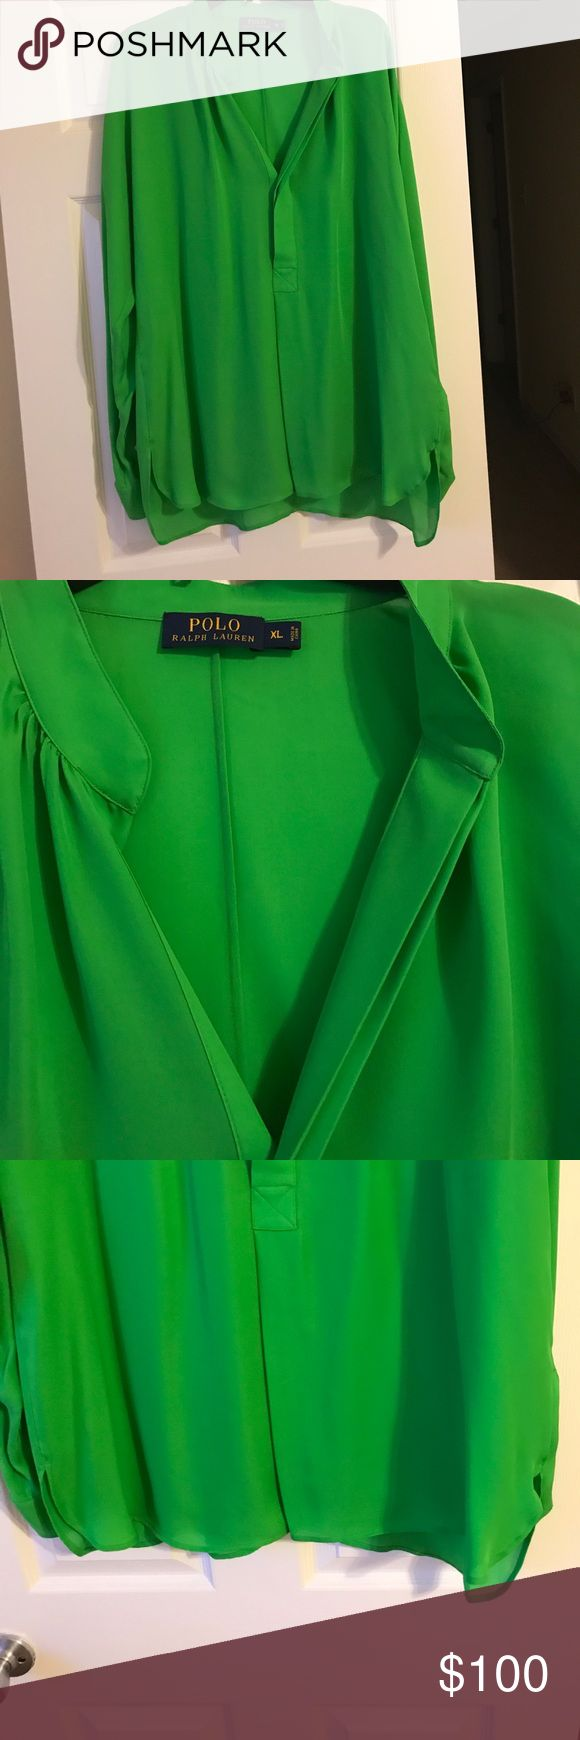 Polo Ralph Lauren blouse, new, bright green Polo Ralph Lauren blouse, new, Color is bright green. Very pretty blouse. Polo by Ralph Lauren Tops Blouses